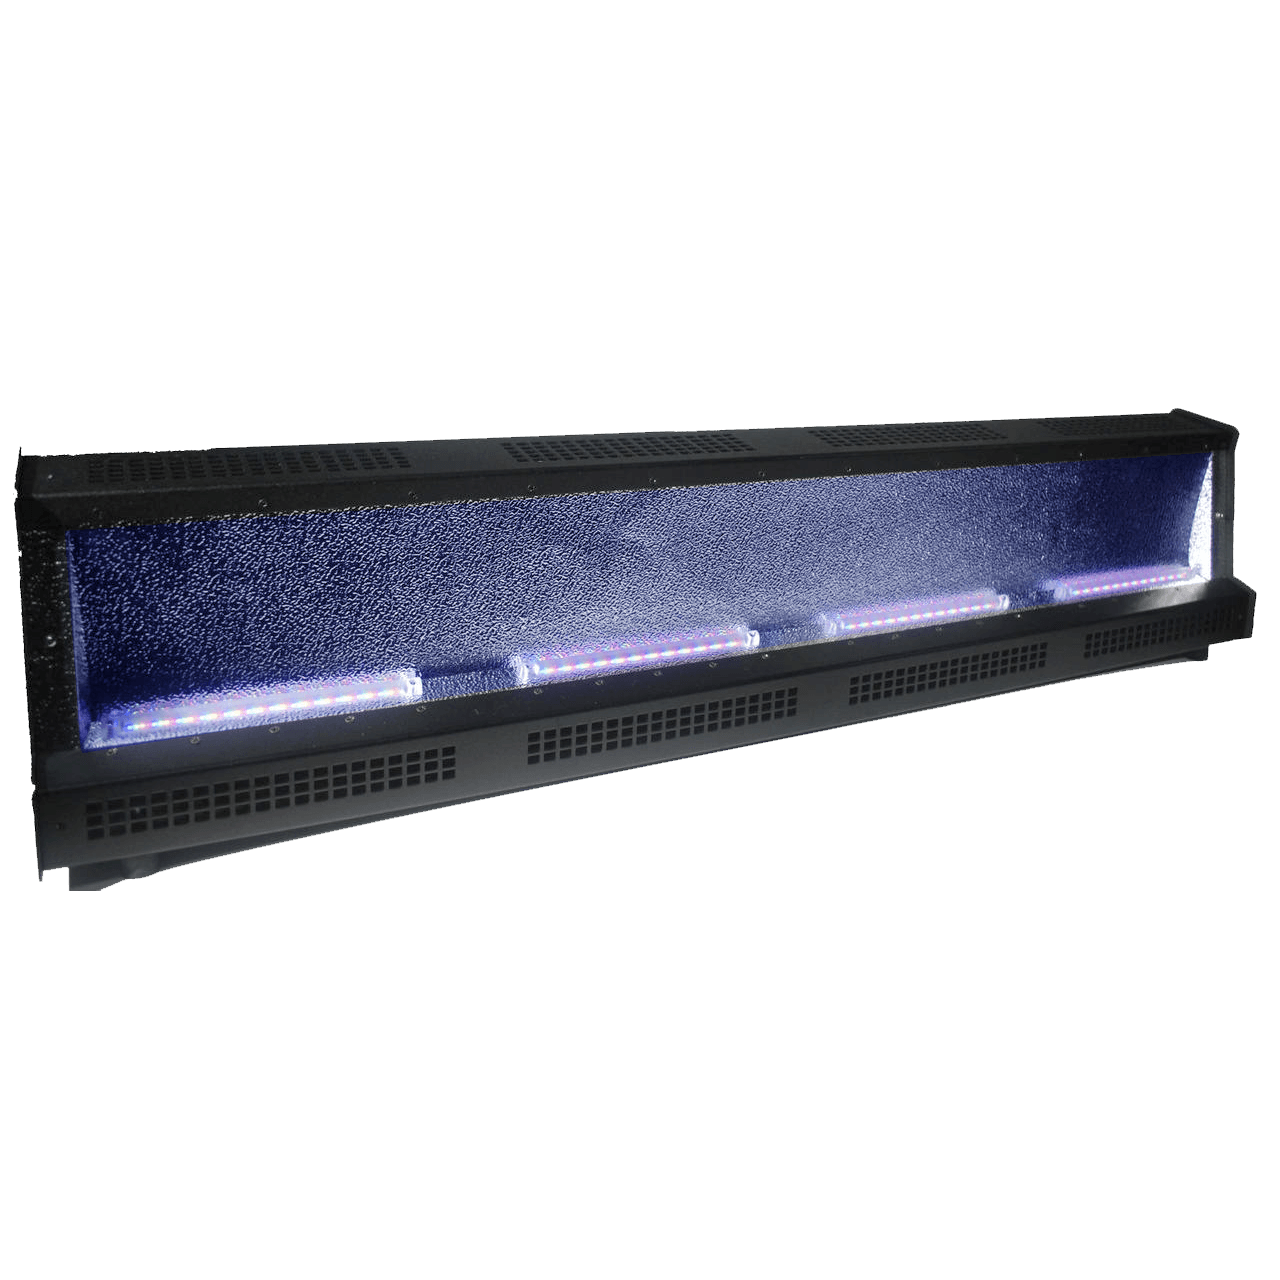 Altman LED Spectra Cyc 400